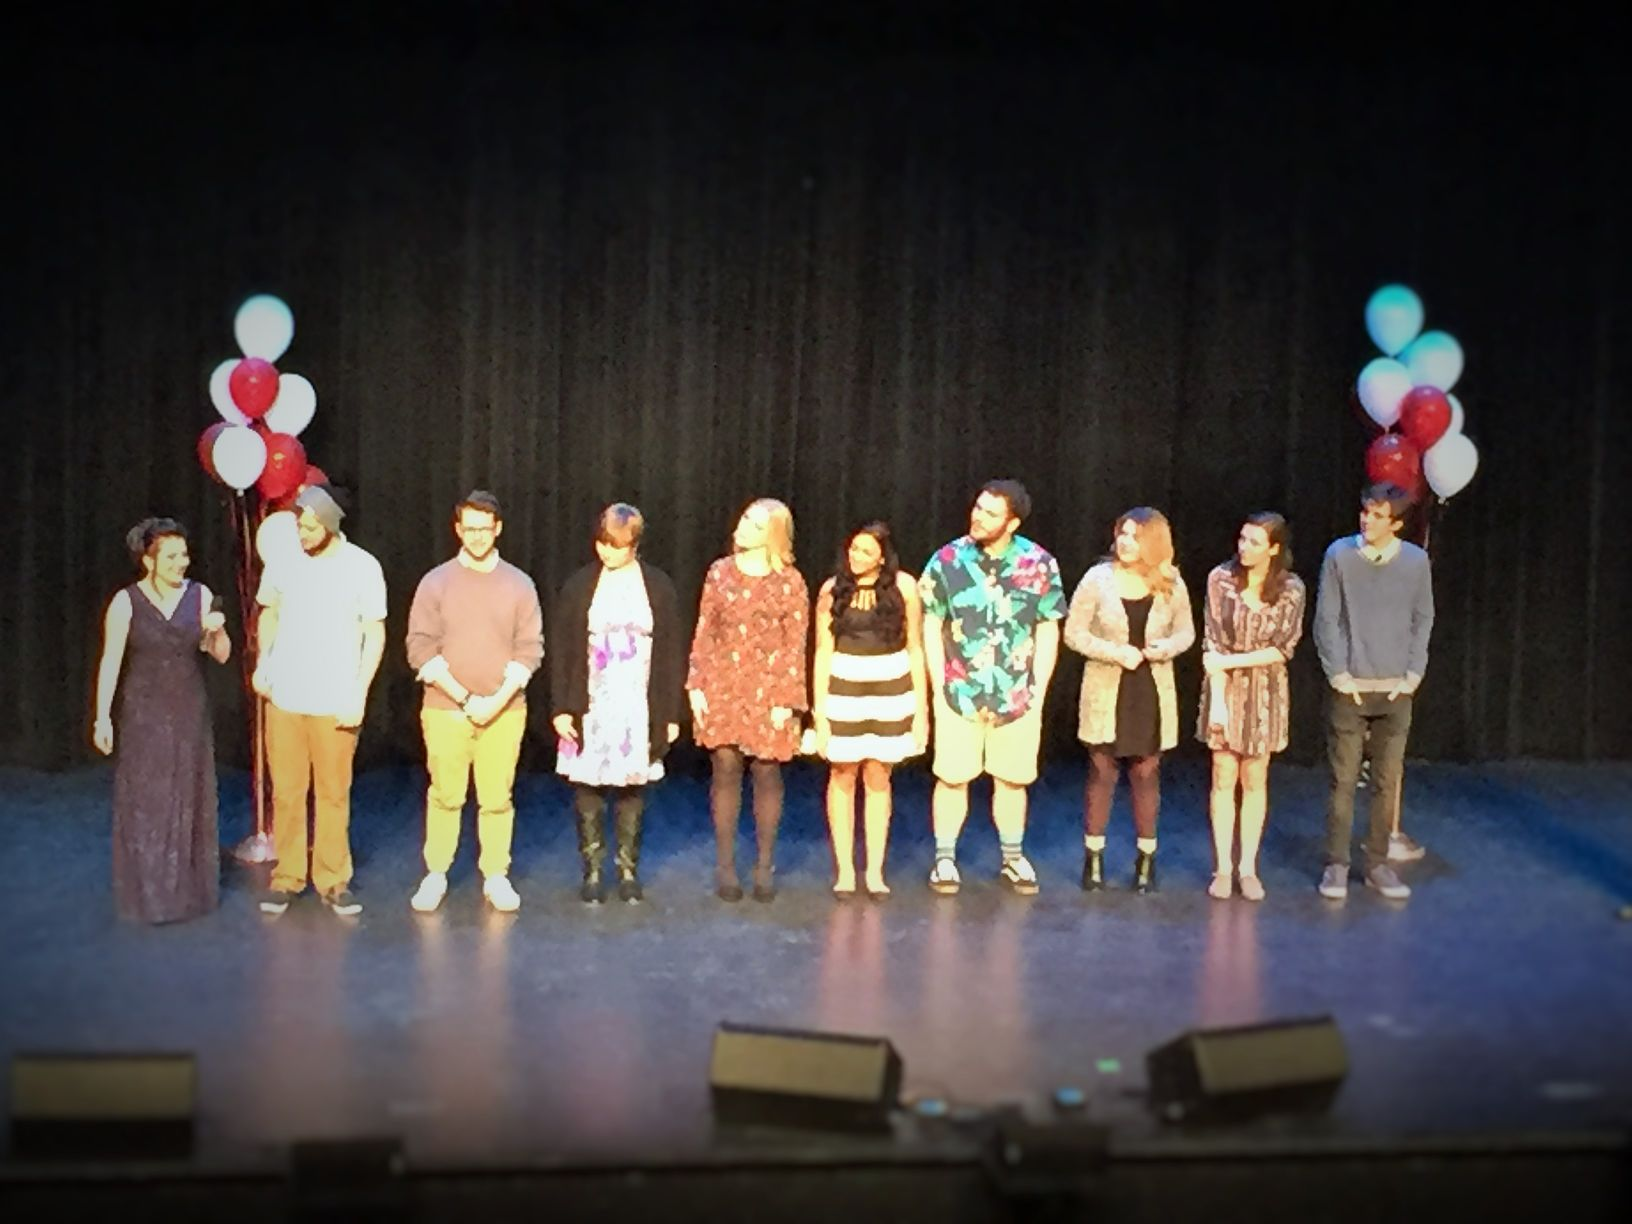 The 10 Dub Idol contestants stand together at the end of the competition awaiting the results.